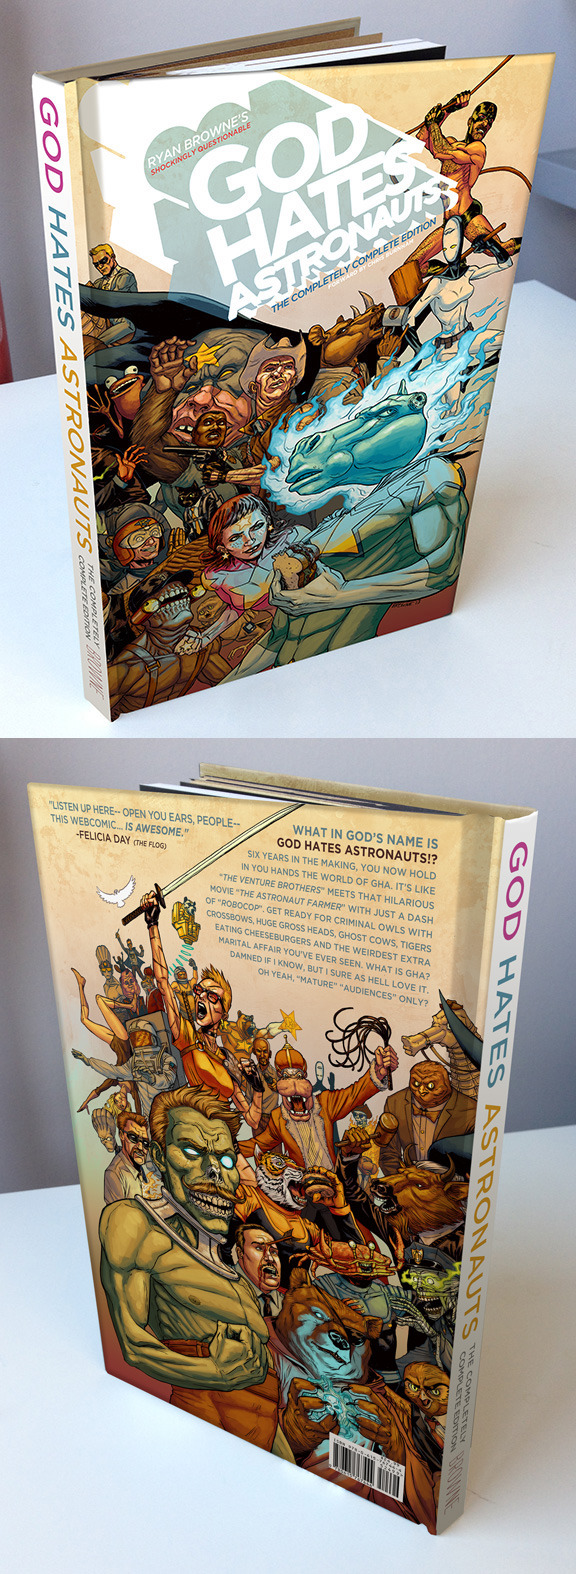 Mock-up of the printed book.